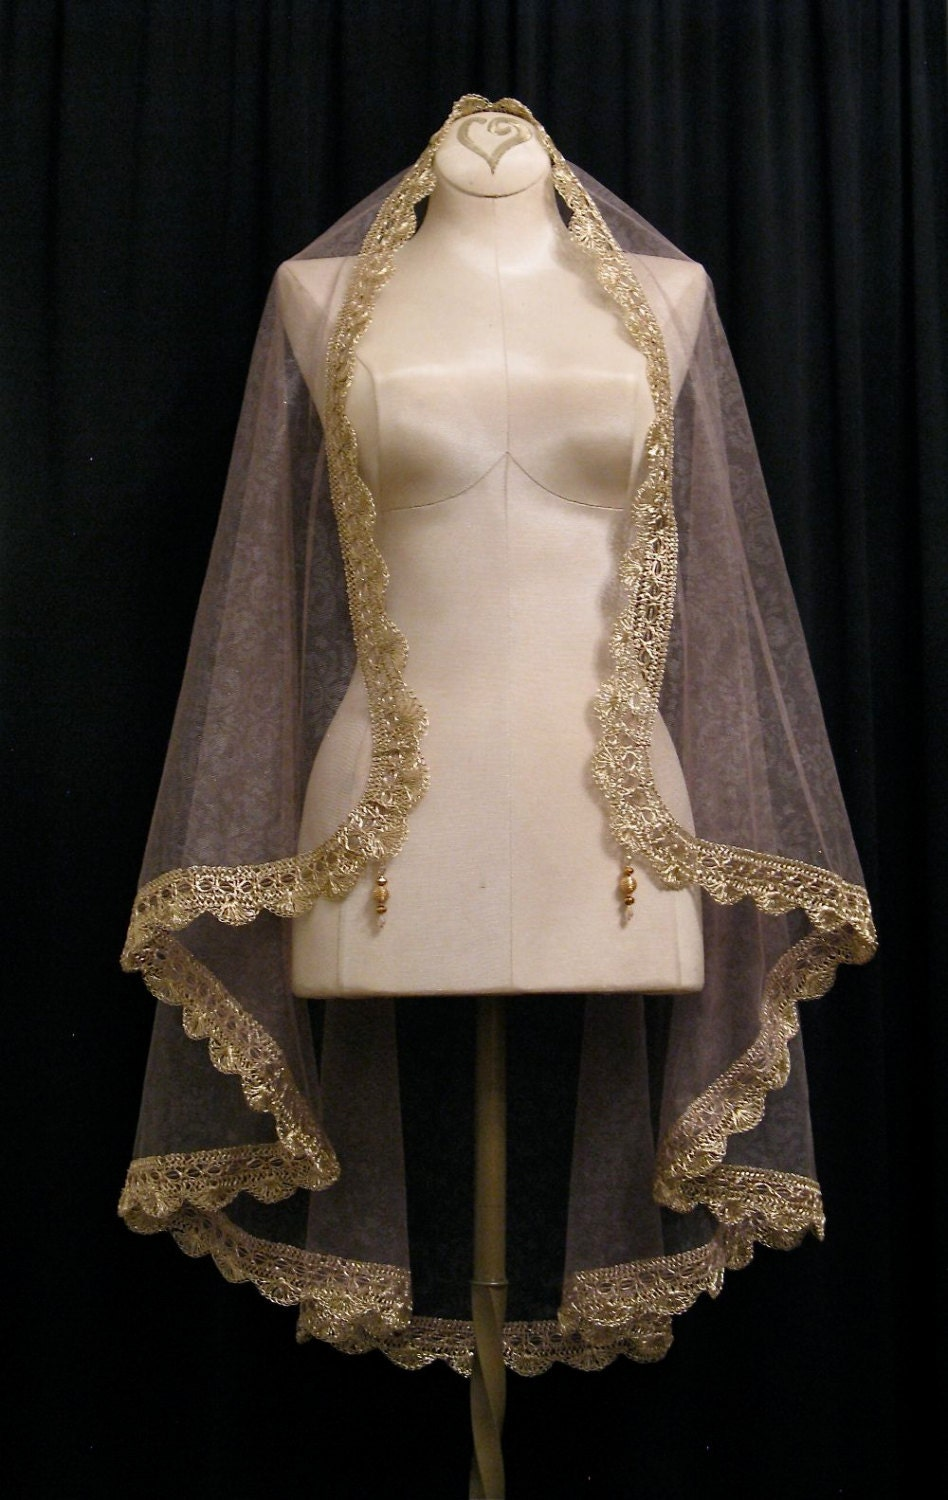 ... Gold French Tulle Wrist Length Mantilla Wedding Veil - One Of A Kind